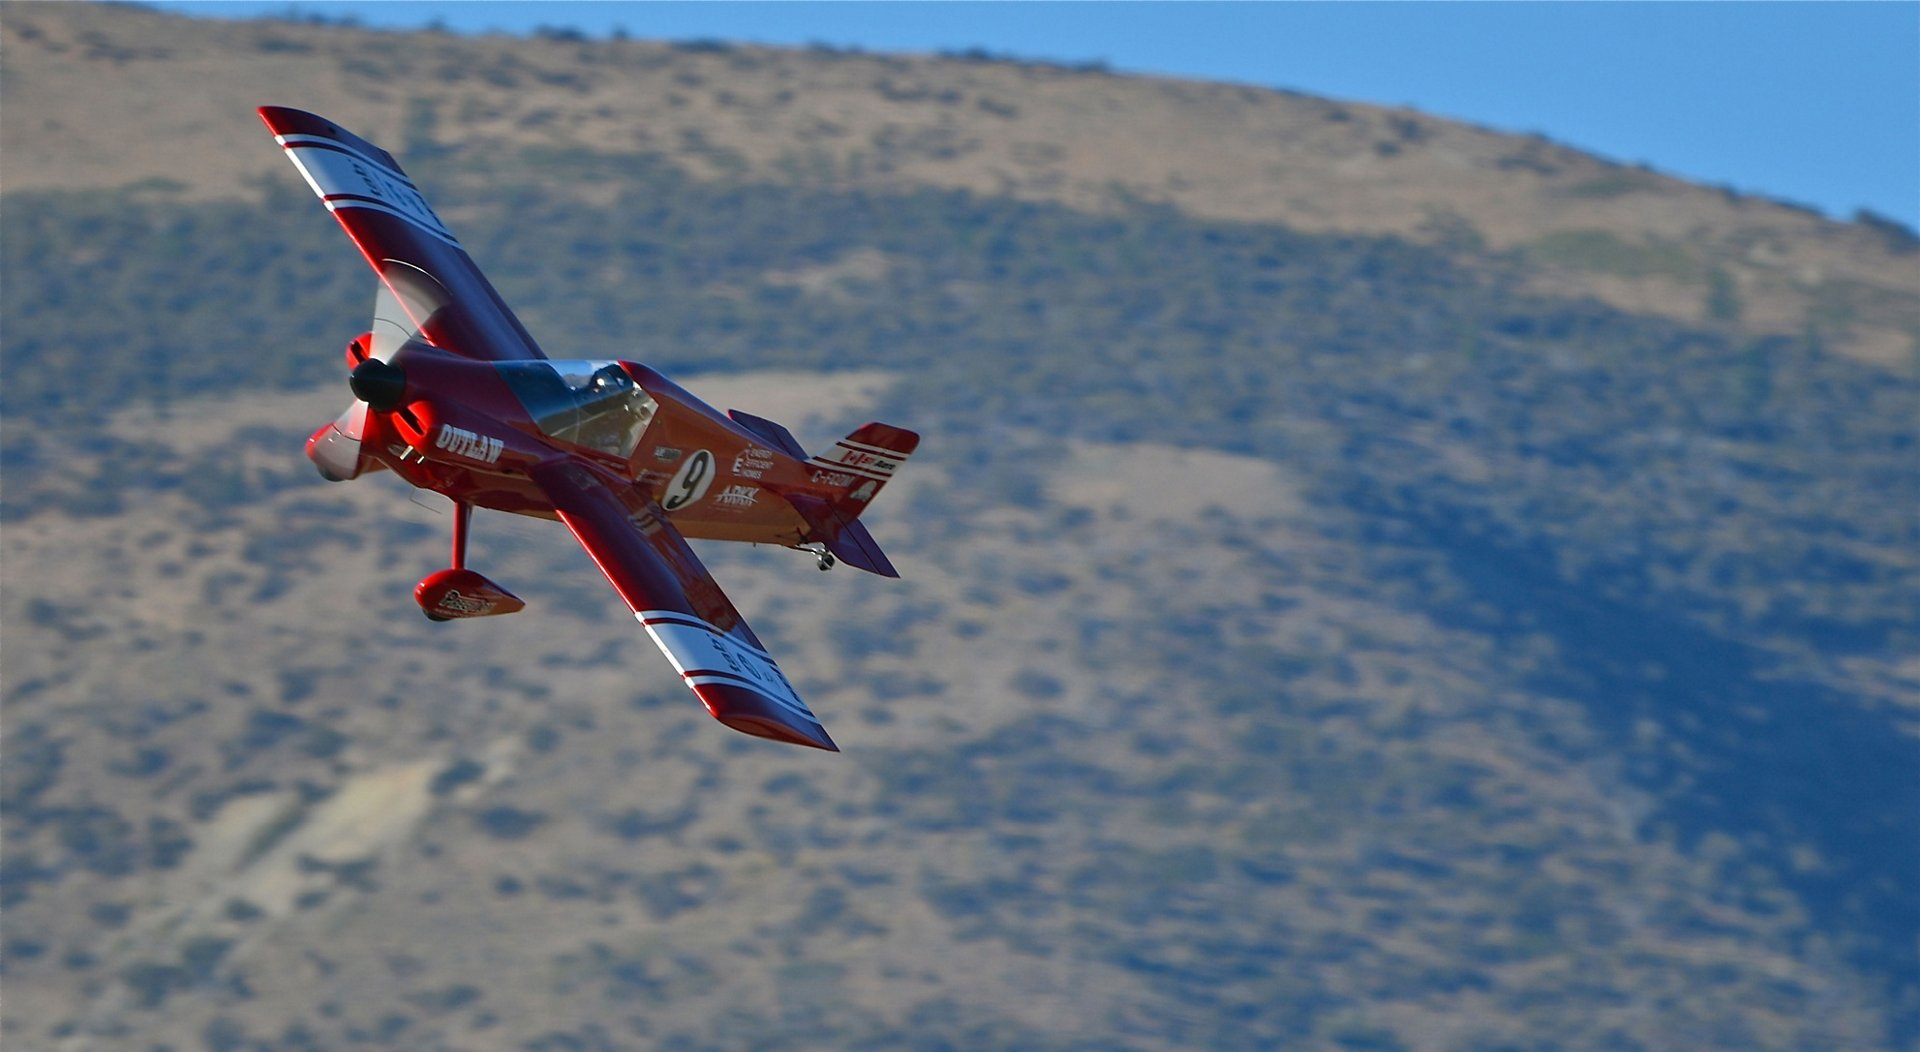 Team Outlaw's aircraft for Air Race E – Race 9 – is an air racing plane that is currently competing on the formula one race circuit